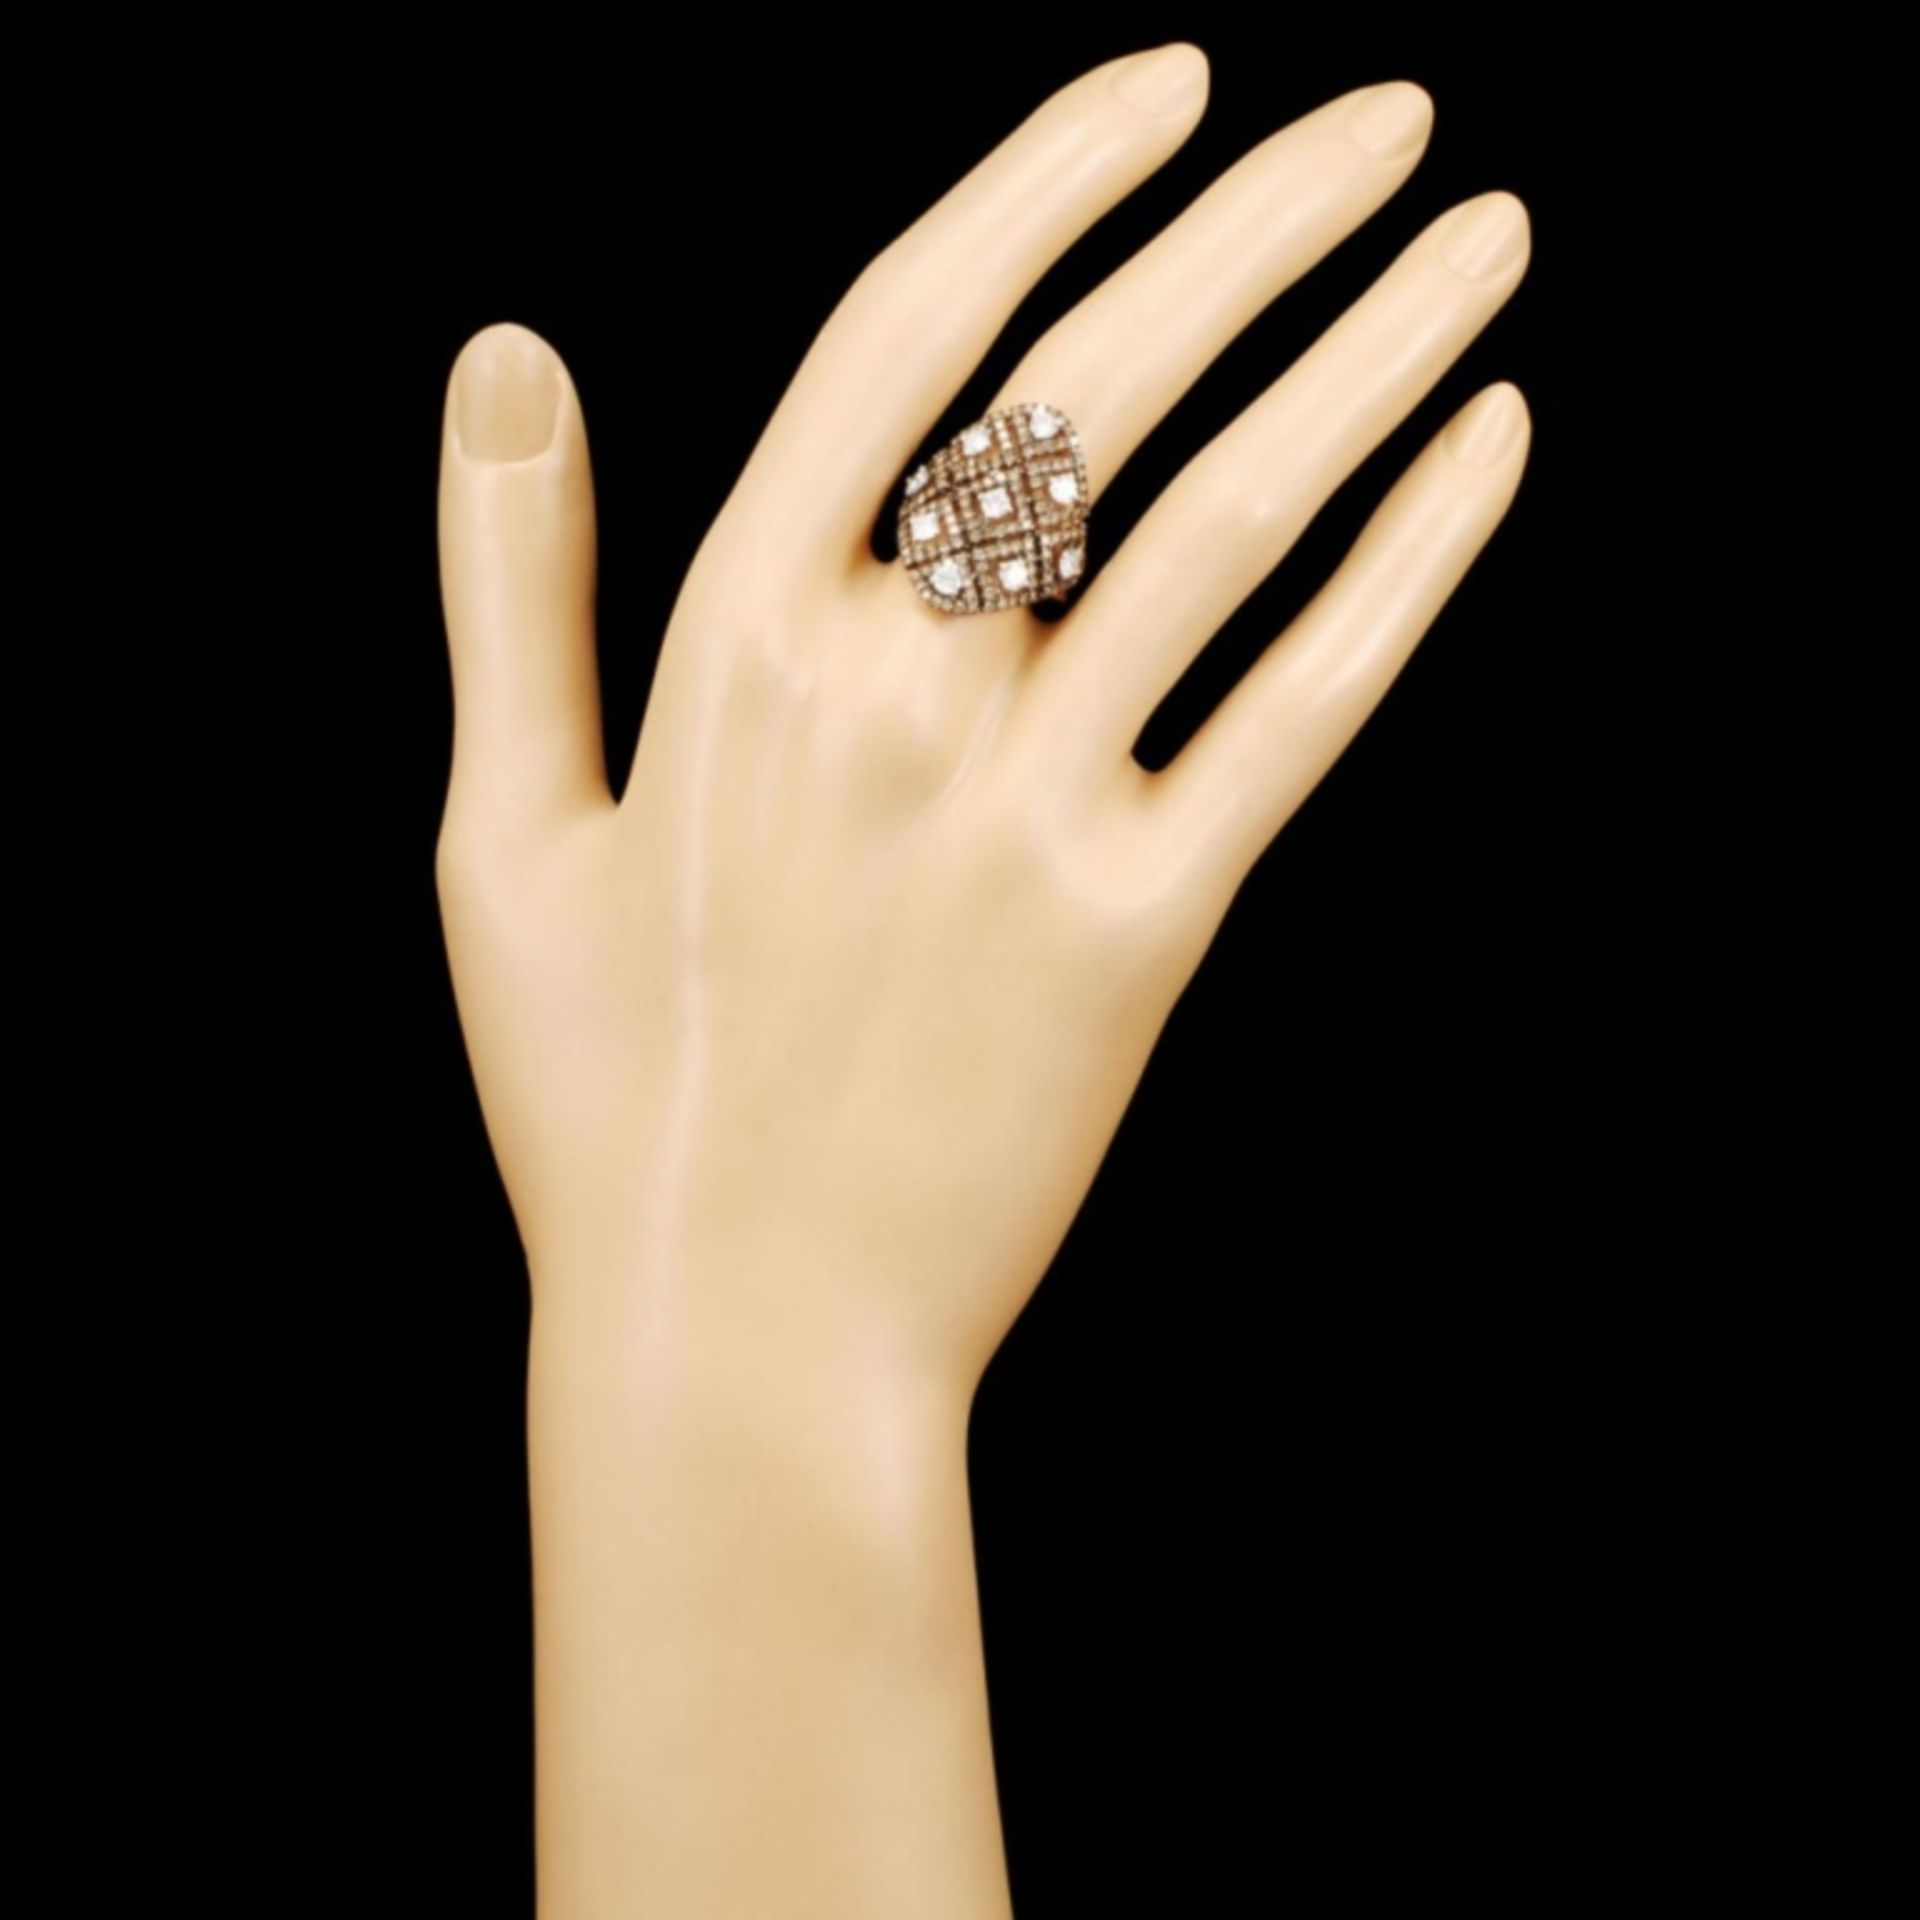 14K Gold 1.93ctw Diamond Ring - Image 4 of 5